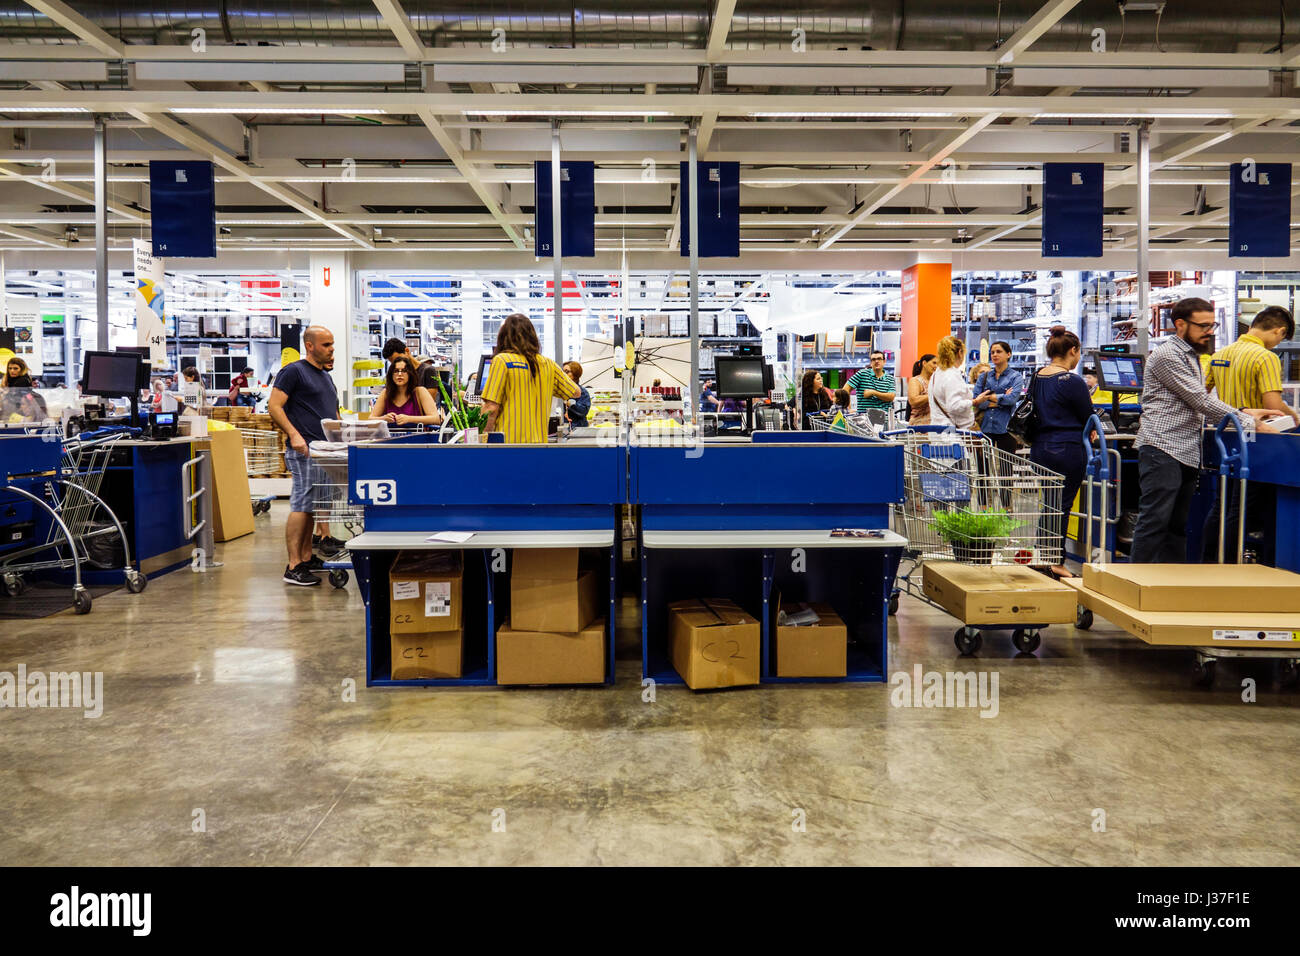 Furniture stores in miami florida - Interesting Miami Florida Ikea Store Retailer Furniture Home Accessories Shopping Cashier Checkout Line Queue Paying With Furniture Store Miami